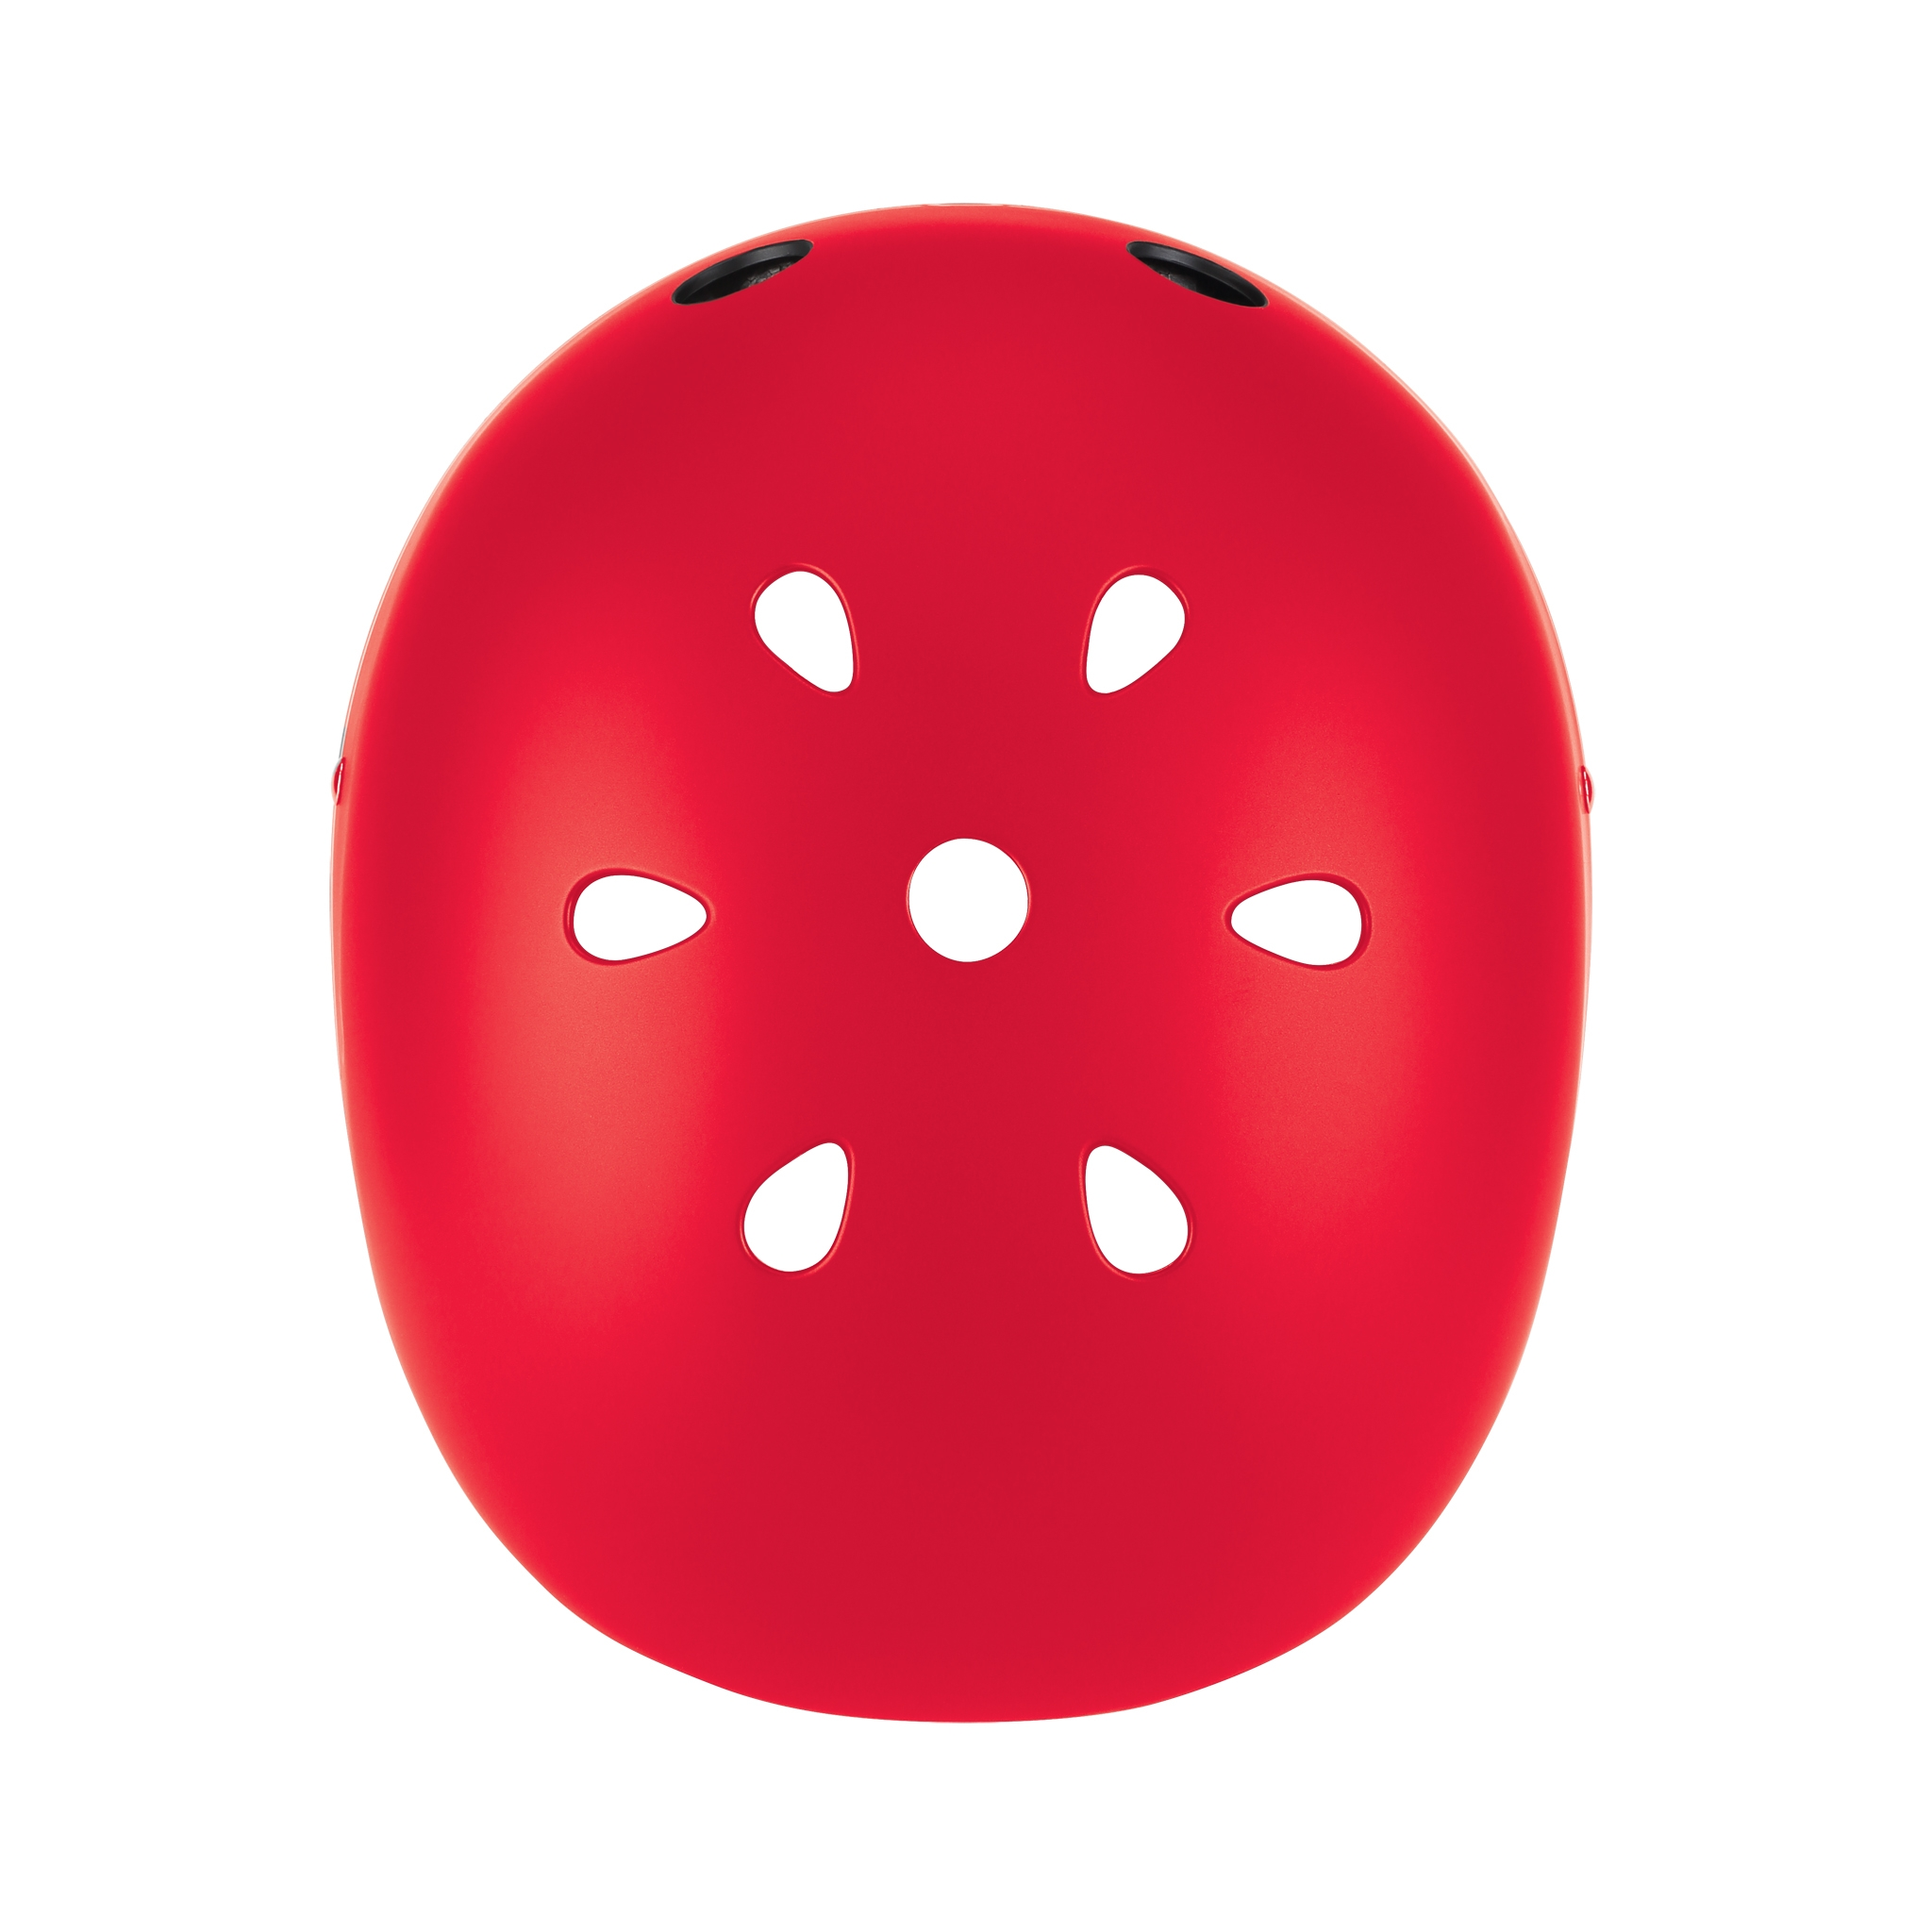 PRIMO-helmets-best-scooter-helmets-for-kids-with-air-vents-cooling-system-new-red